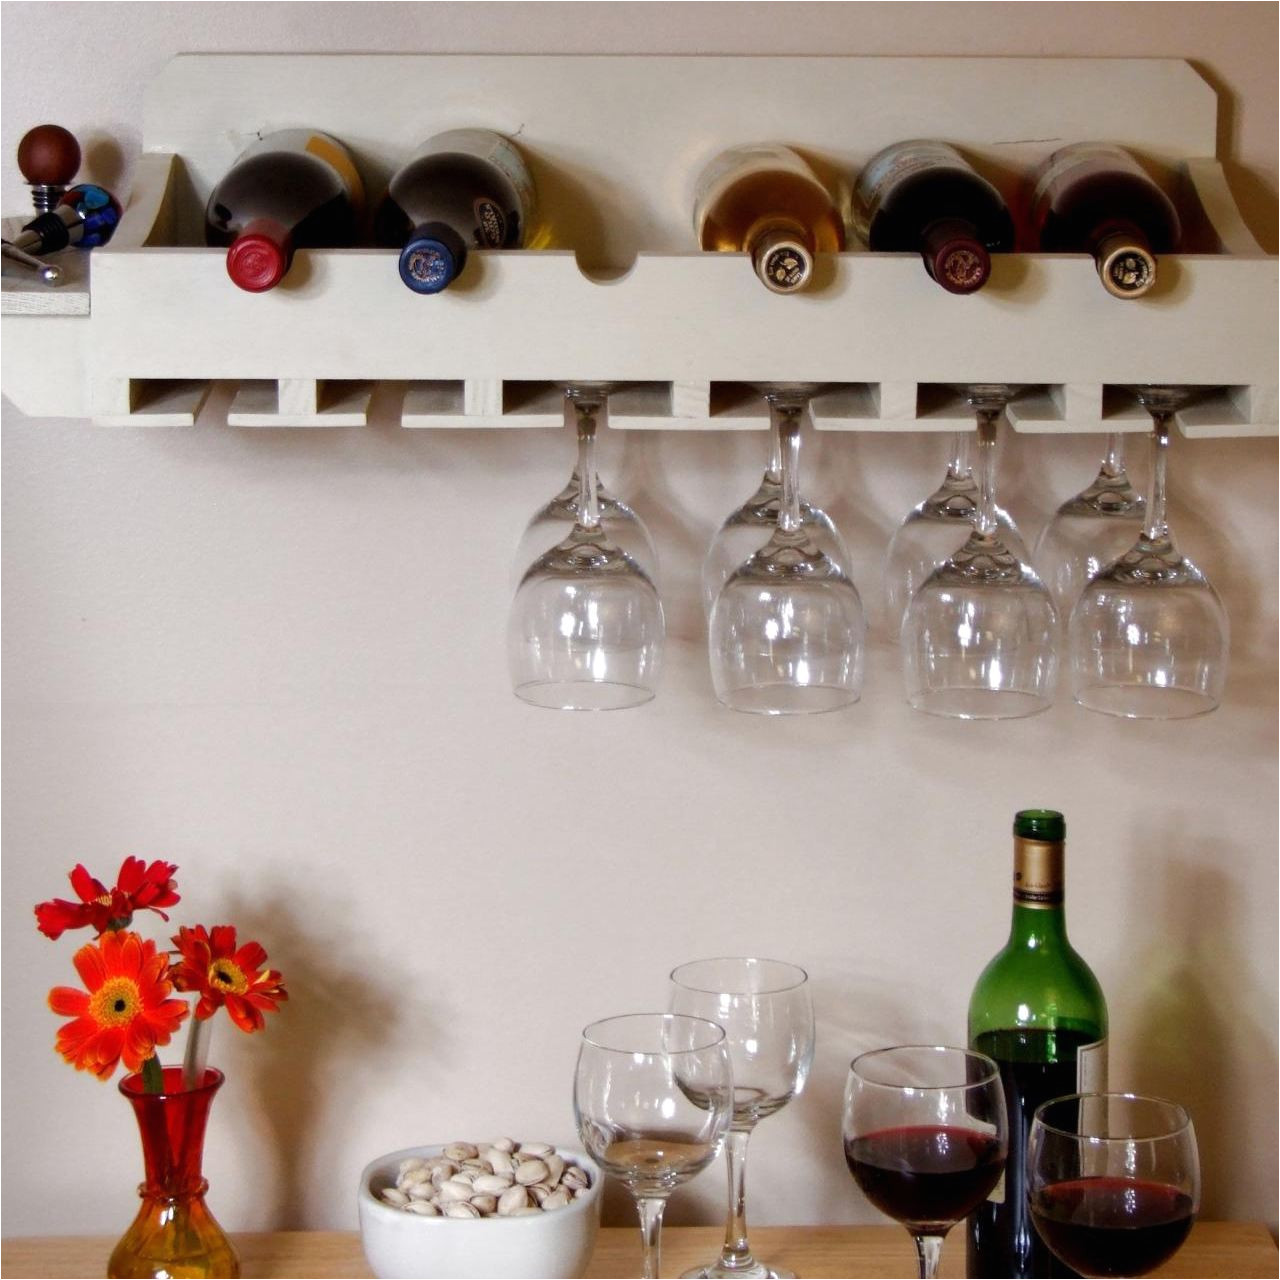 a wine rack with places for bottles and glasses diy network